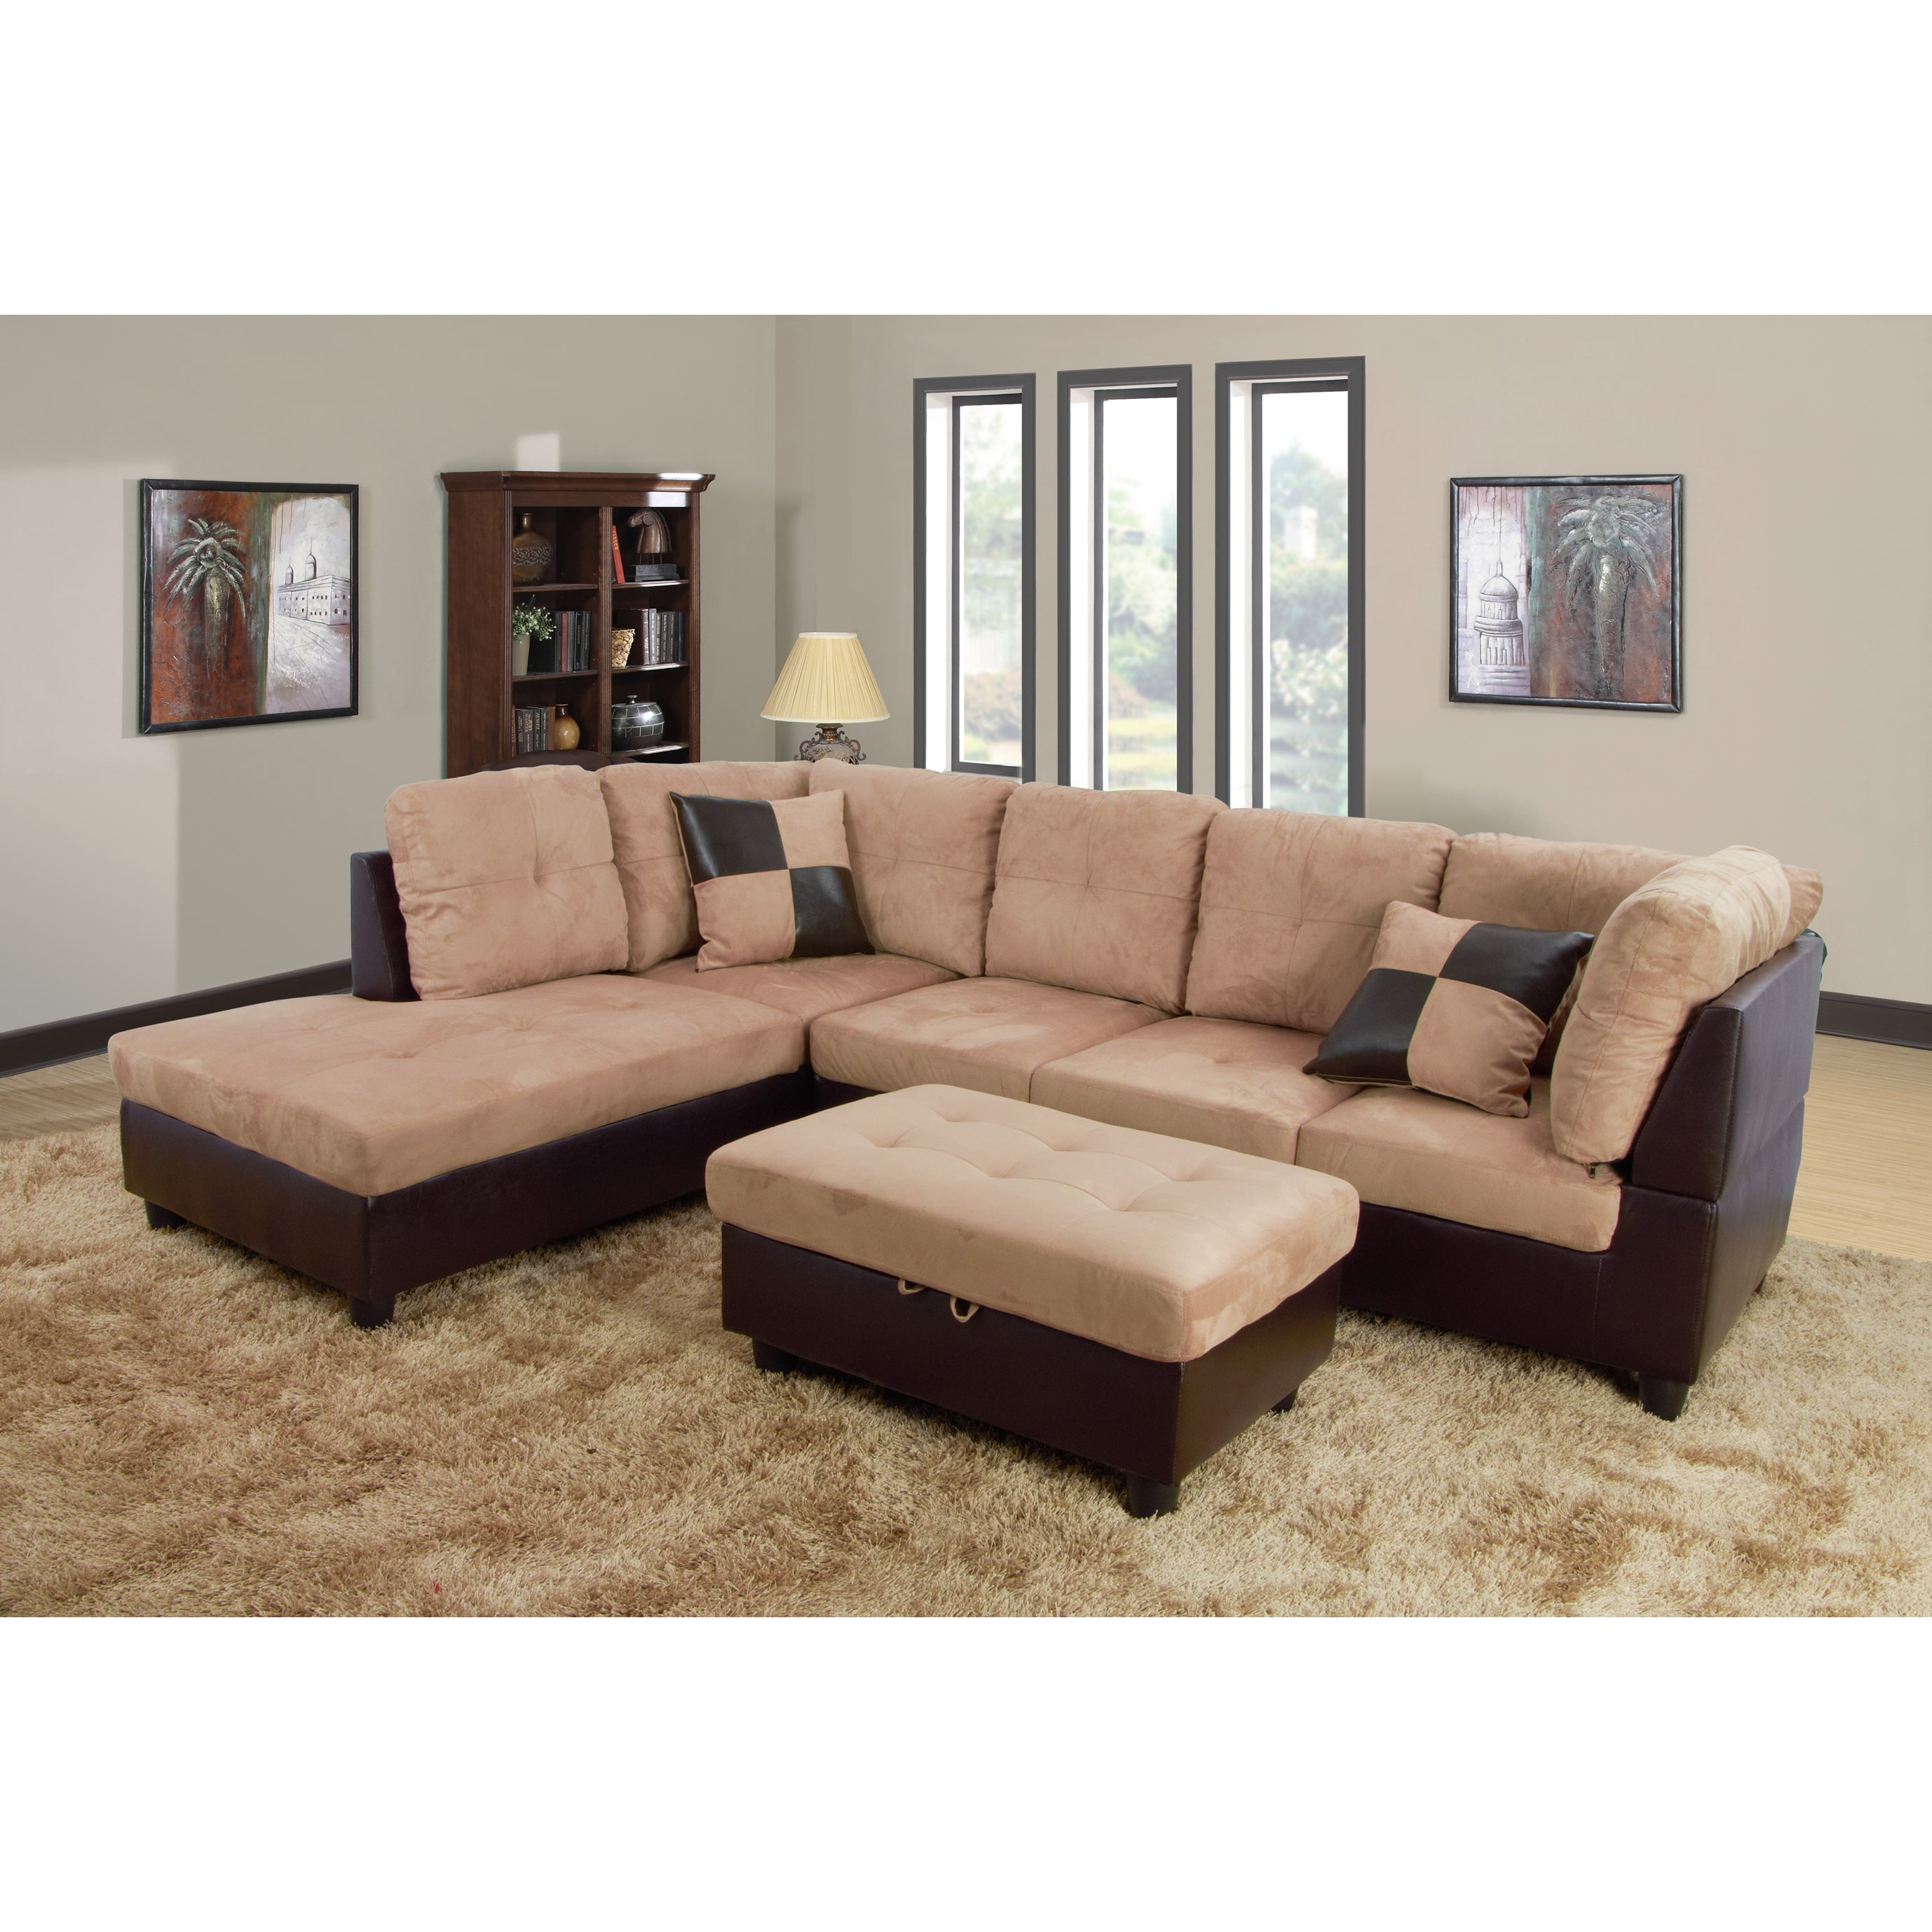 lifestyle furniture lf103a siano left hand facing sectional sofa sand 35 x 103 5 x 74 5 in